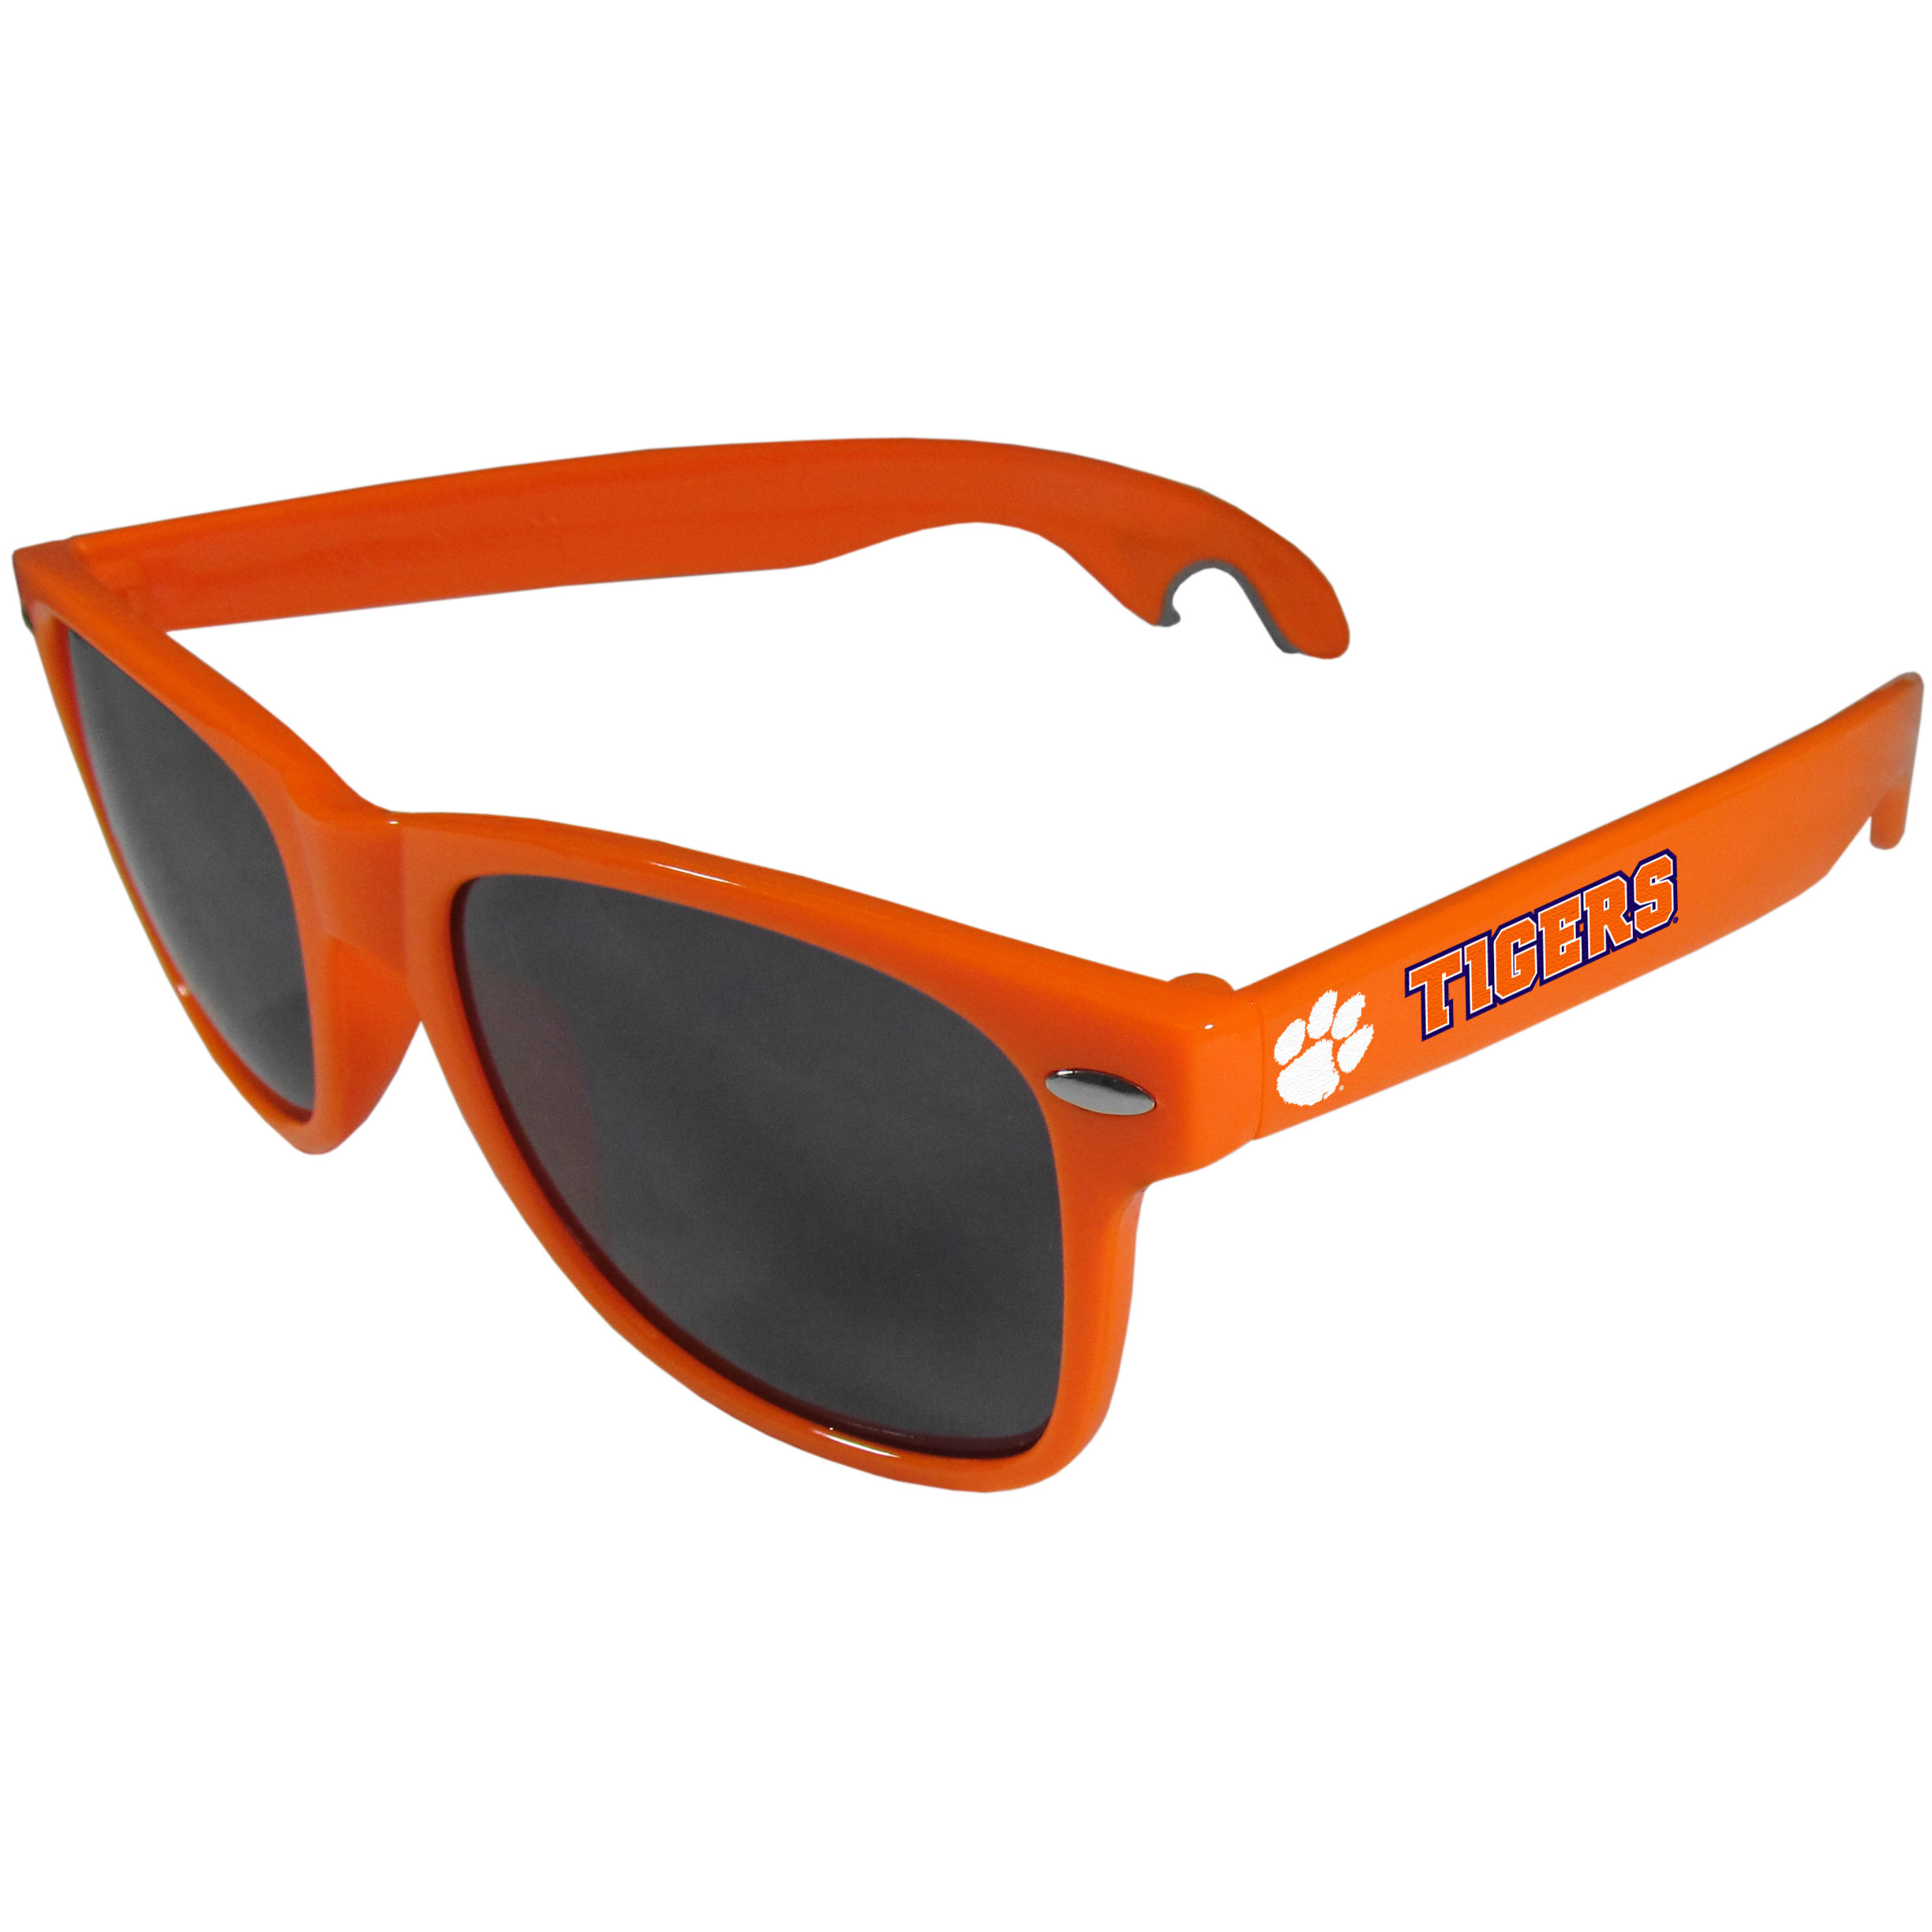 Clemson Tigers Beachfarer Bottle Opener Sunglasses, Orange - Seriously, these sunglasses open bottles! Keep the party going with these amazing Clemson Tigers bottle opener sunglasses. The stylish retro frames feature team designs on the arms and functional bottle openers on the end of the arms. Whether you are at the beach or having a backyard BBQ on game day, these shades will keep your eyes protected with 100% UVA/UVB protection and keep you hydrated with the handy bottle opener arms.